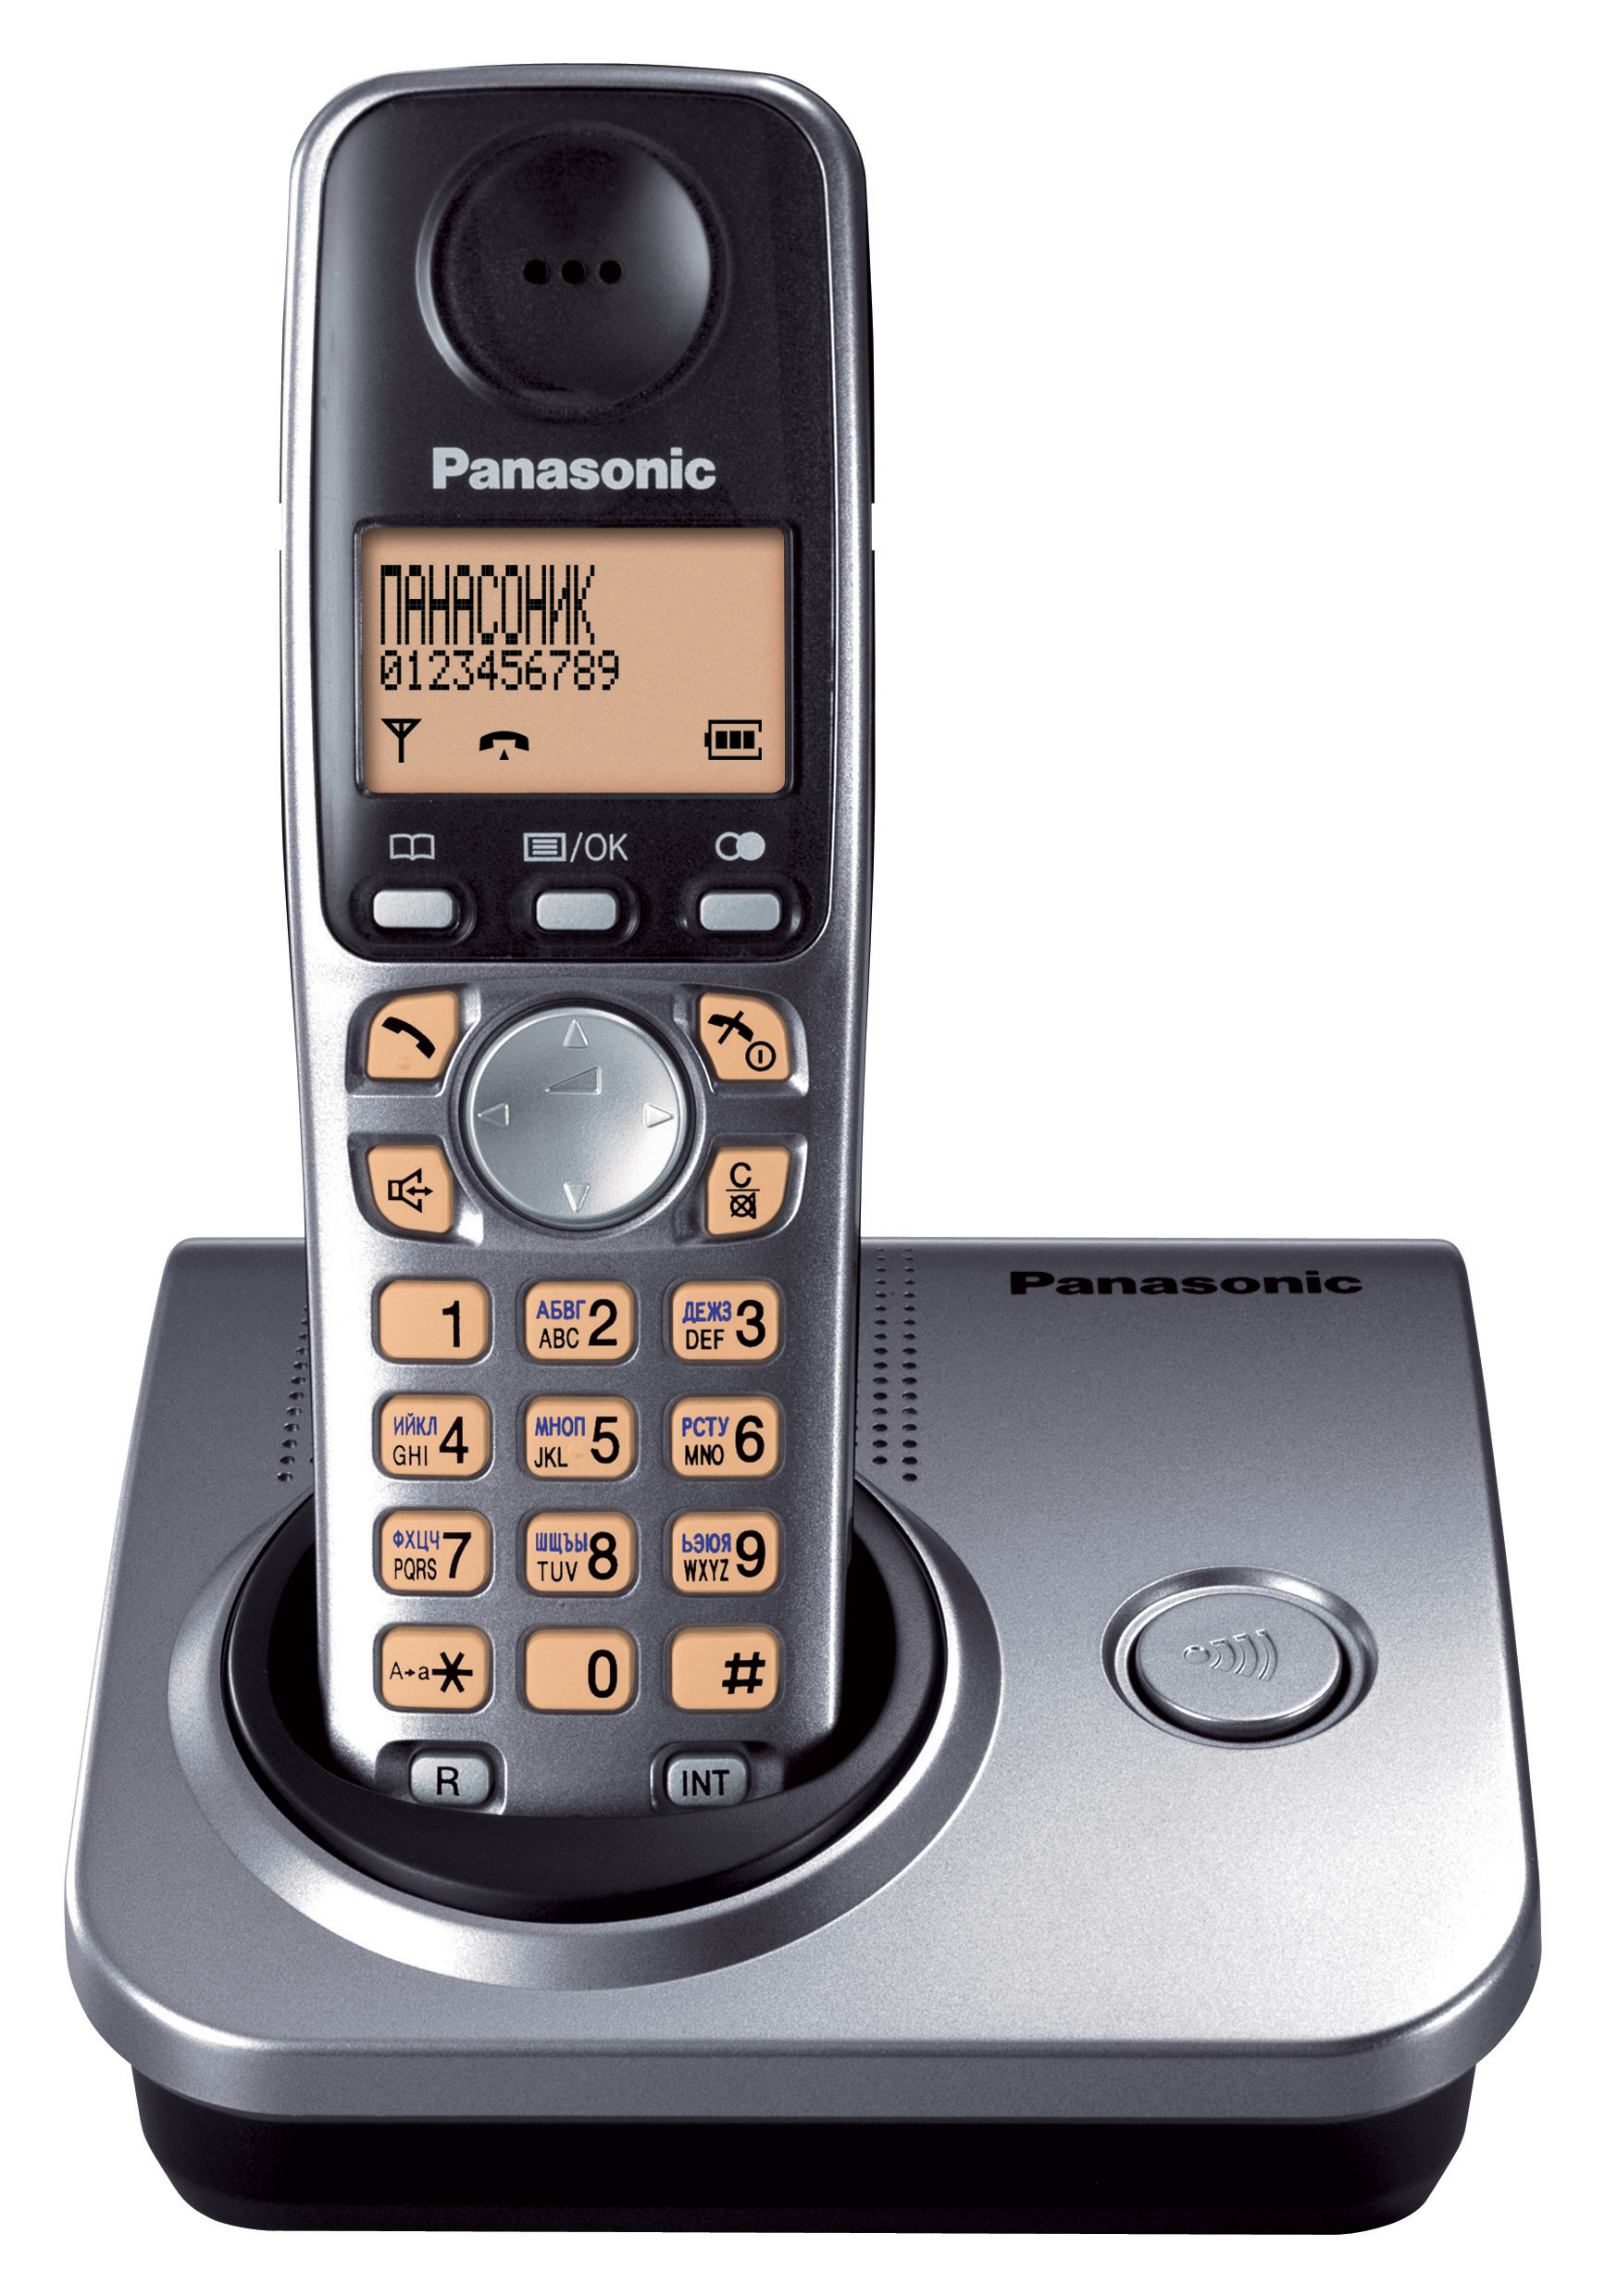 Радиотелефон panasonic kx tc2100bx инструкция